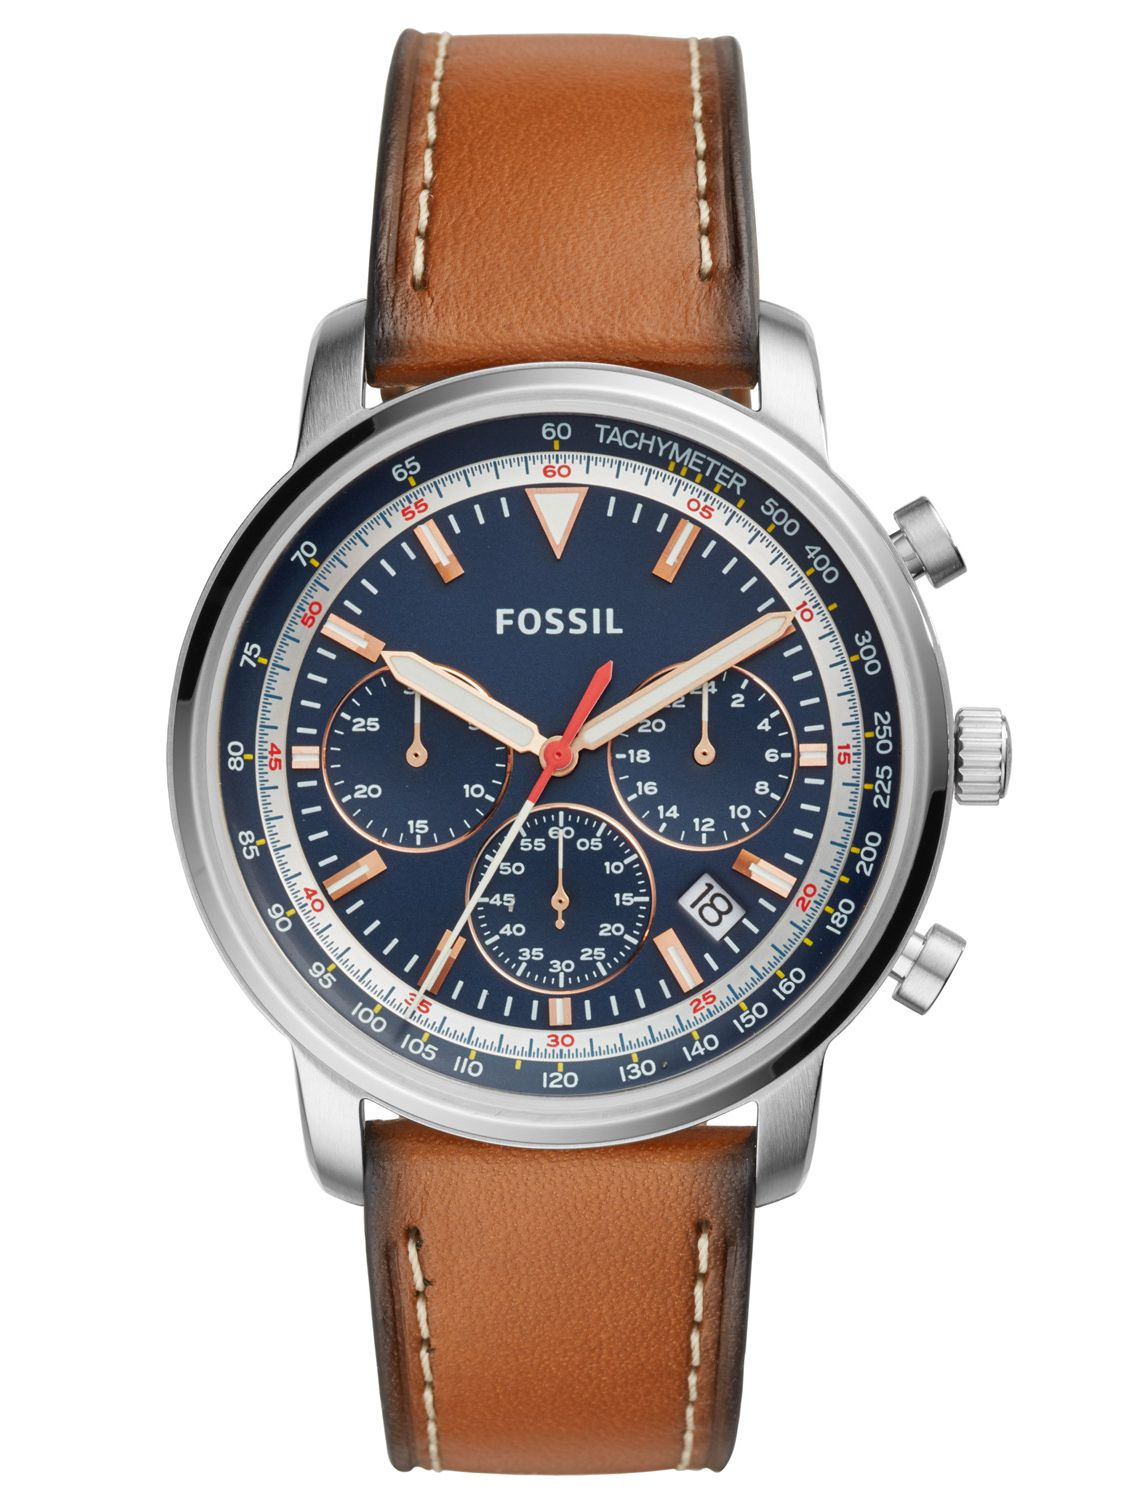 81535bbce Fossil FS5414 Mens Wrist Watch Chronograph Goodwin Image 1 ...